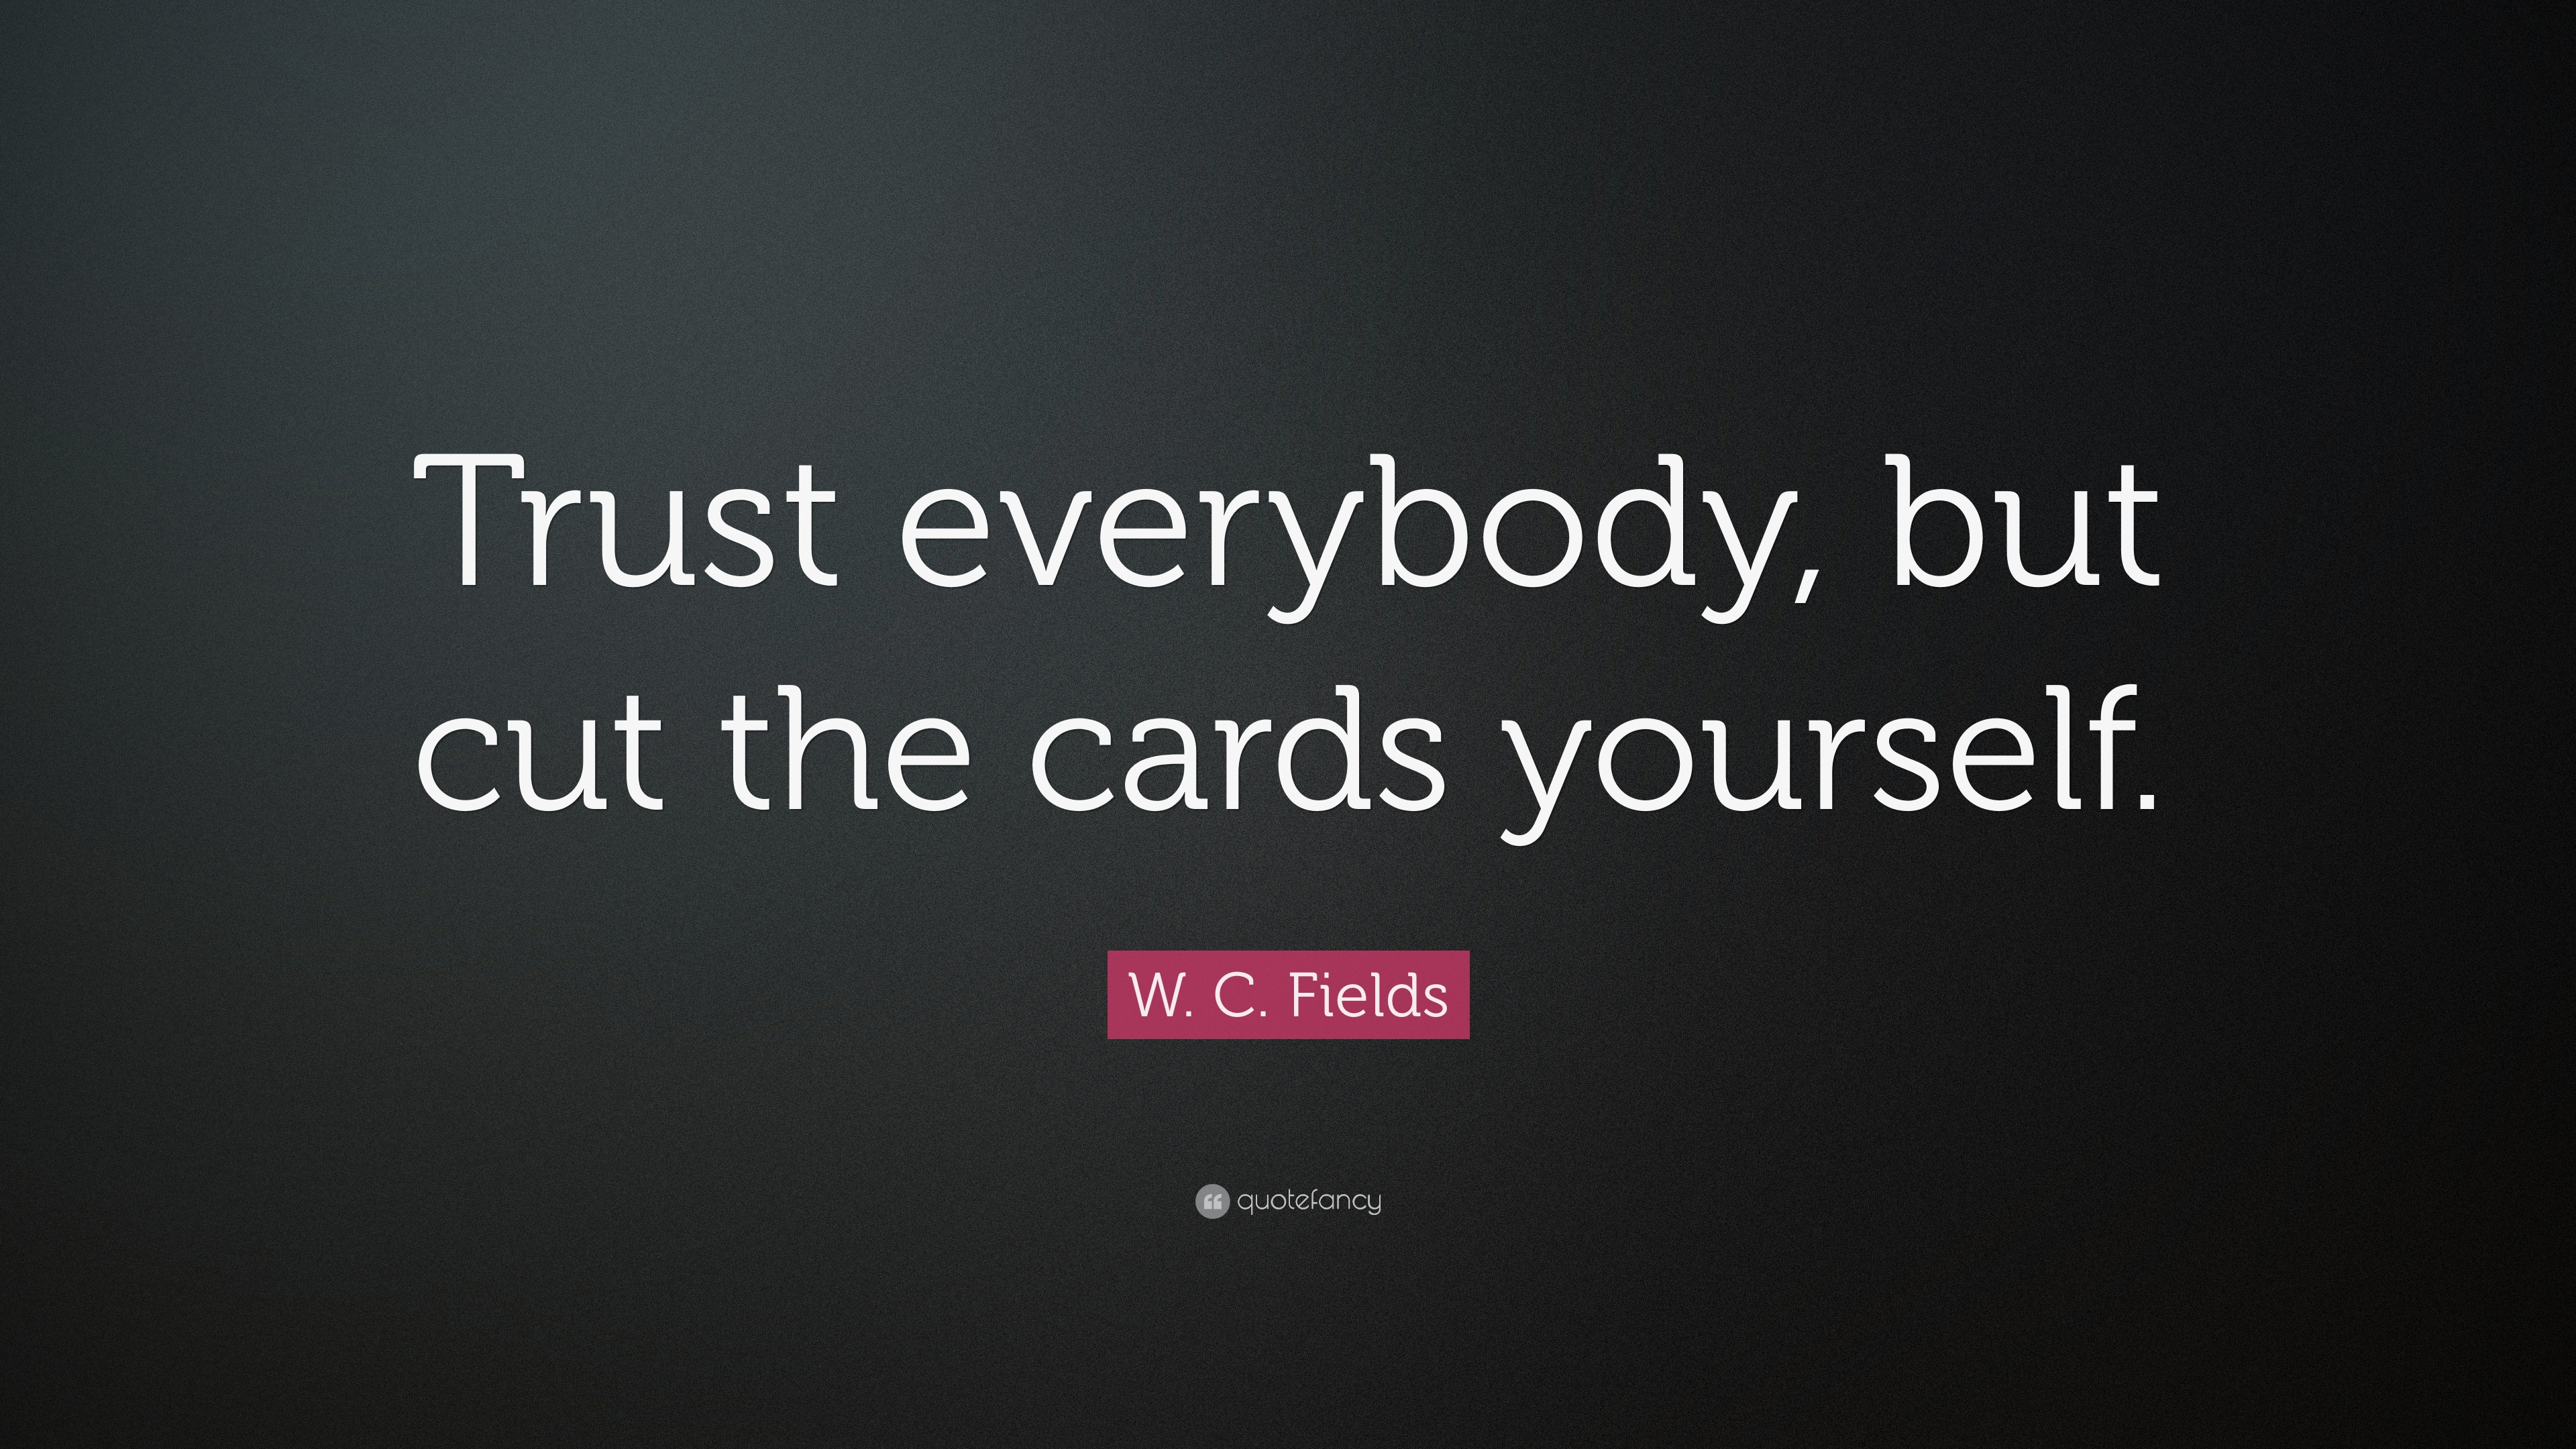 W  C  Fields Quote   Trust everybody  but cut the cards yourself. W  C  Fields Quote   Trust everybody  but cut the cards yourself